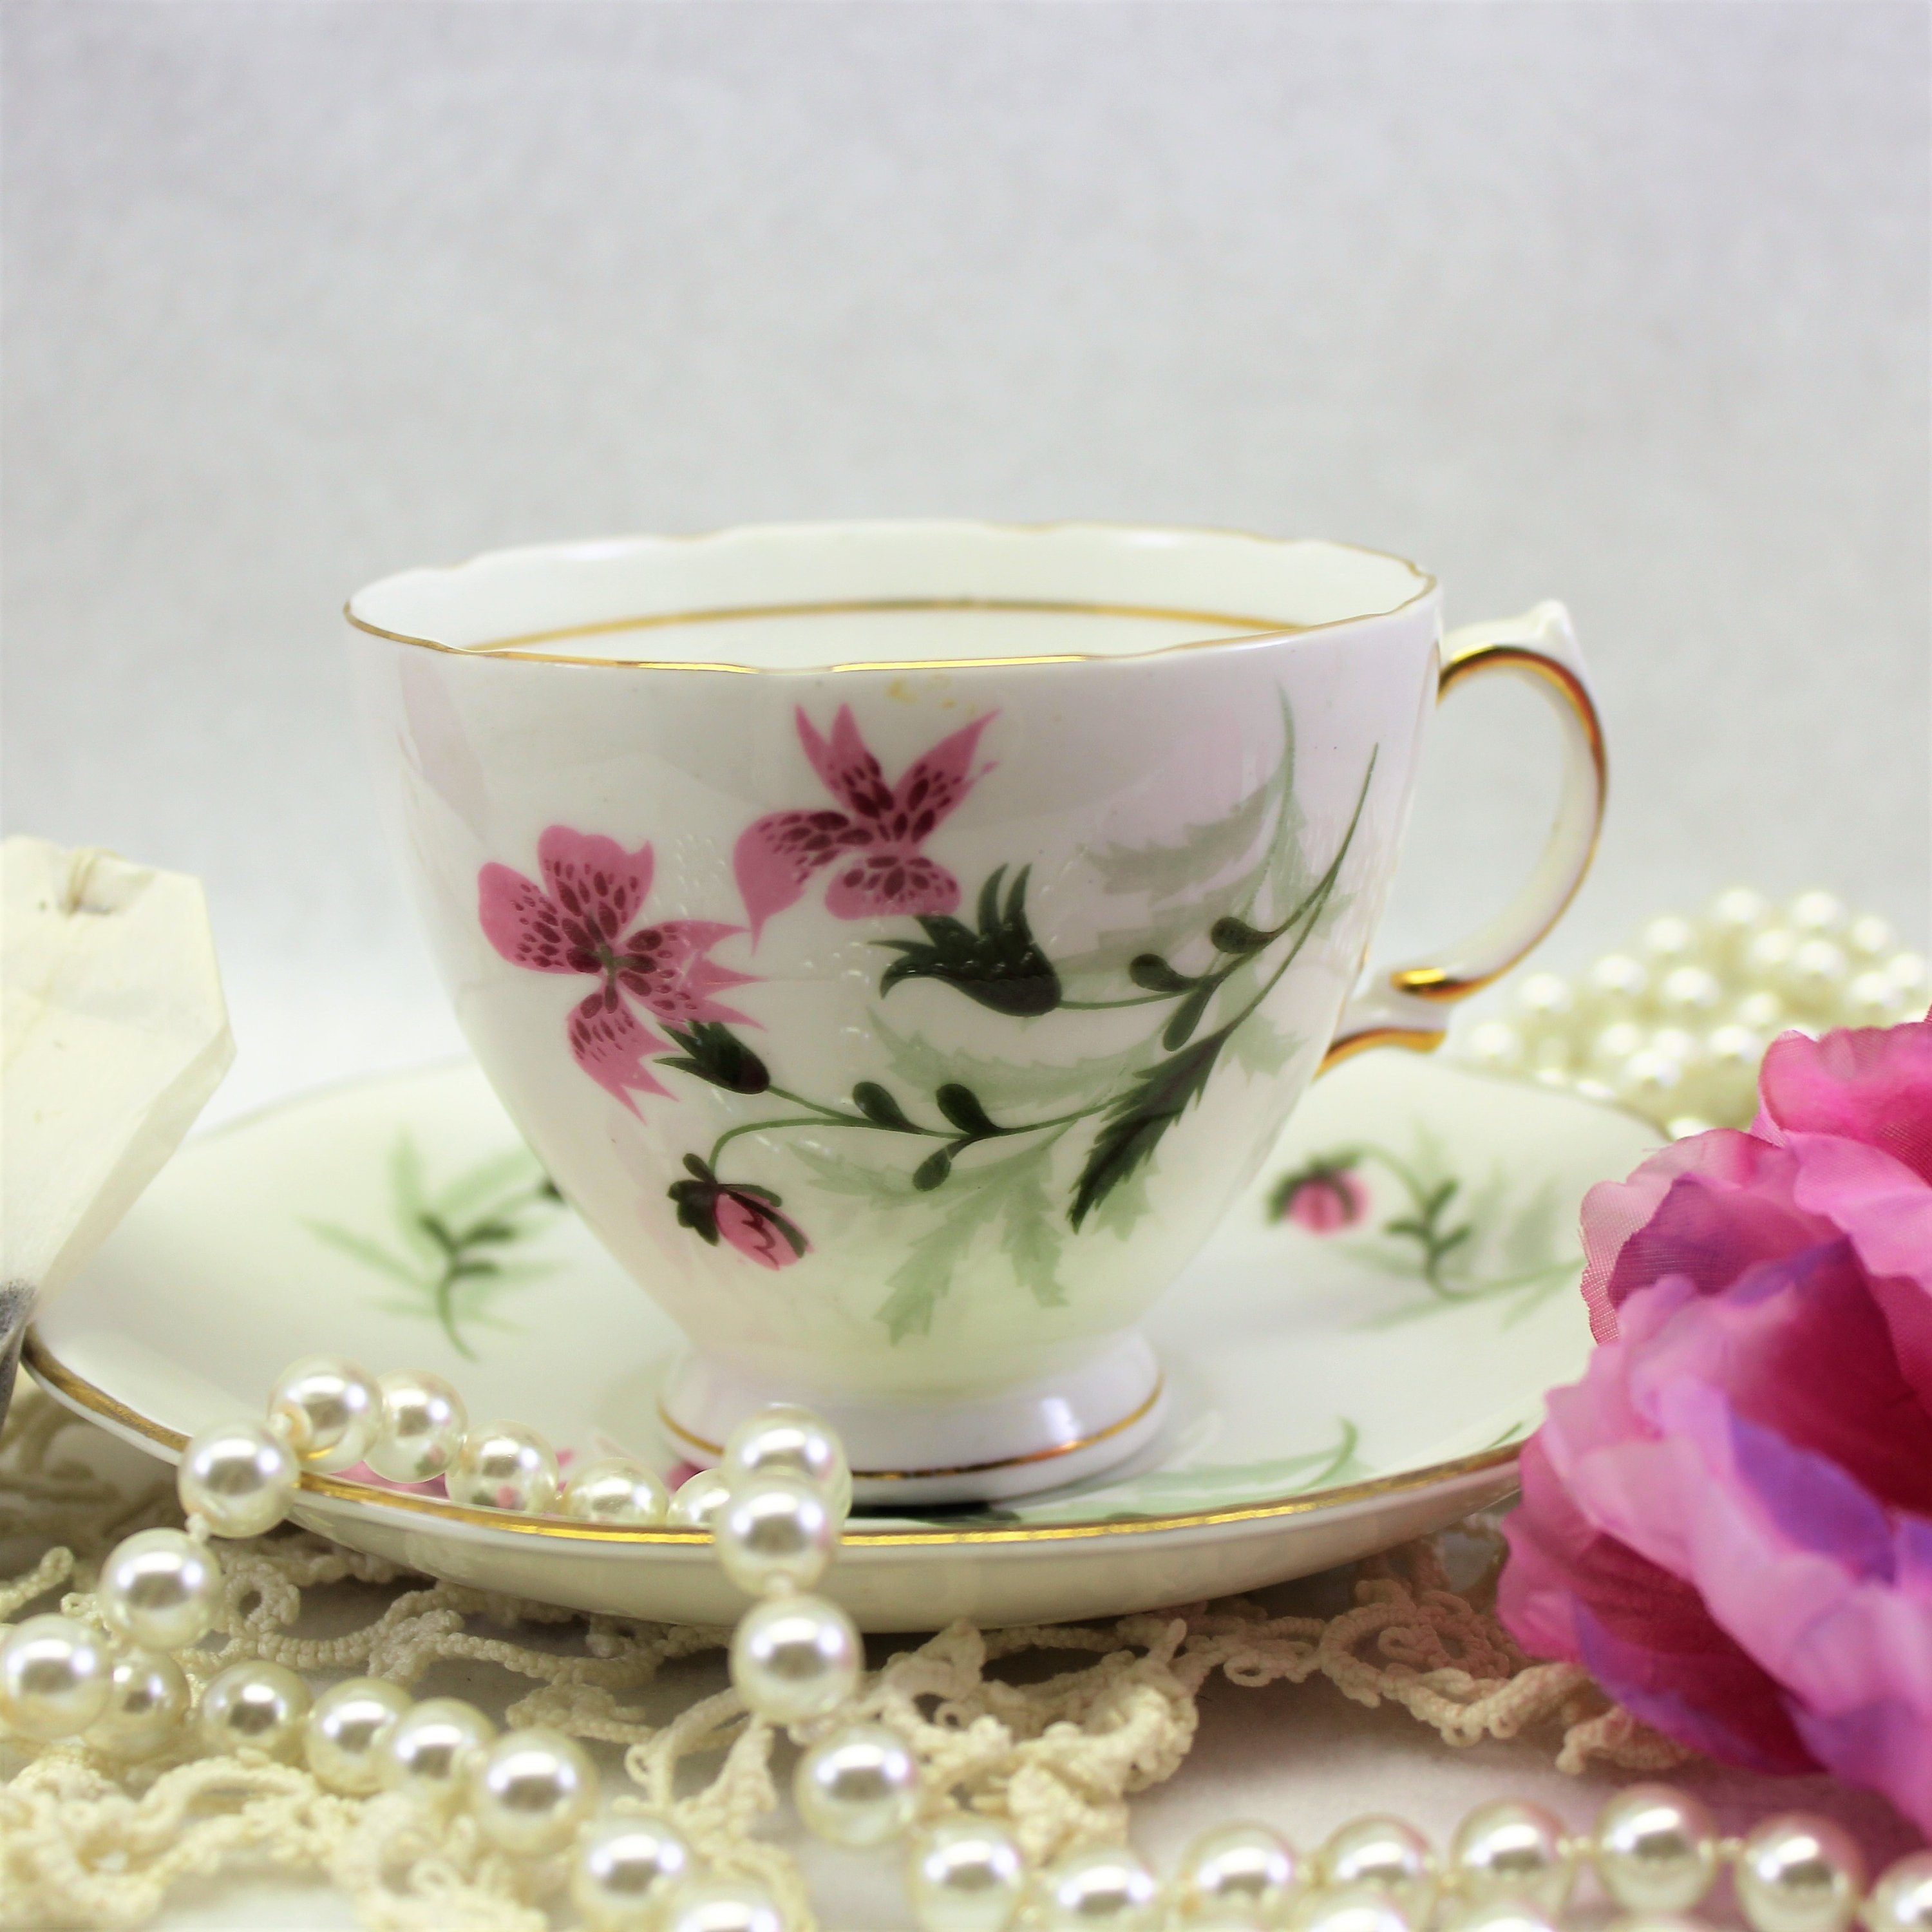 Vintage Colclough Pink Lily Tea Cup And Matching Saucer 1960s